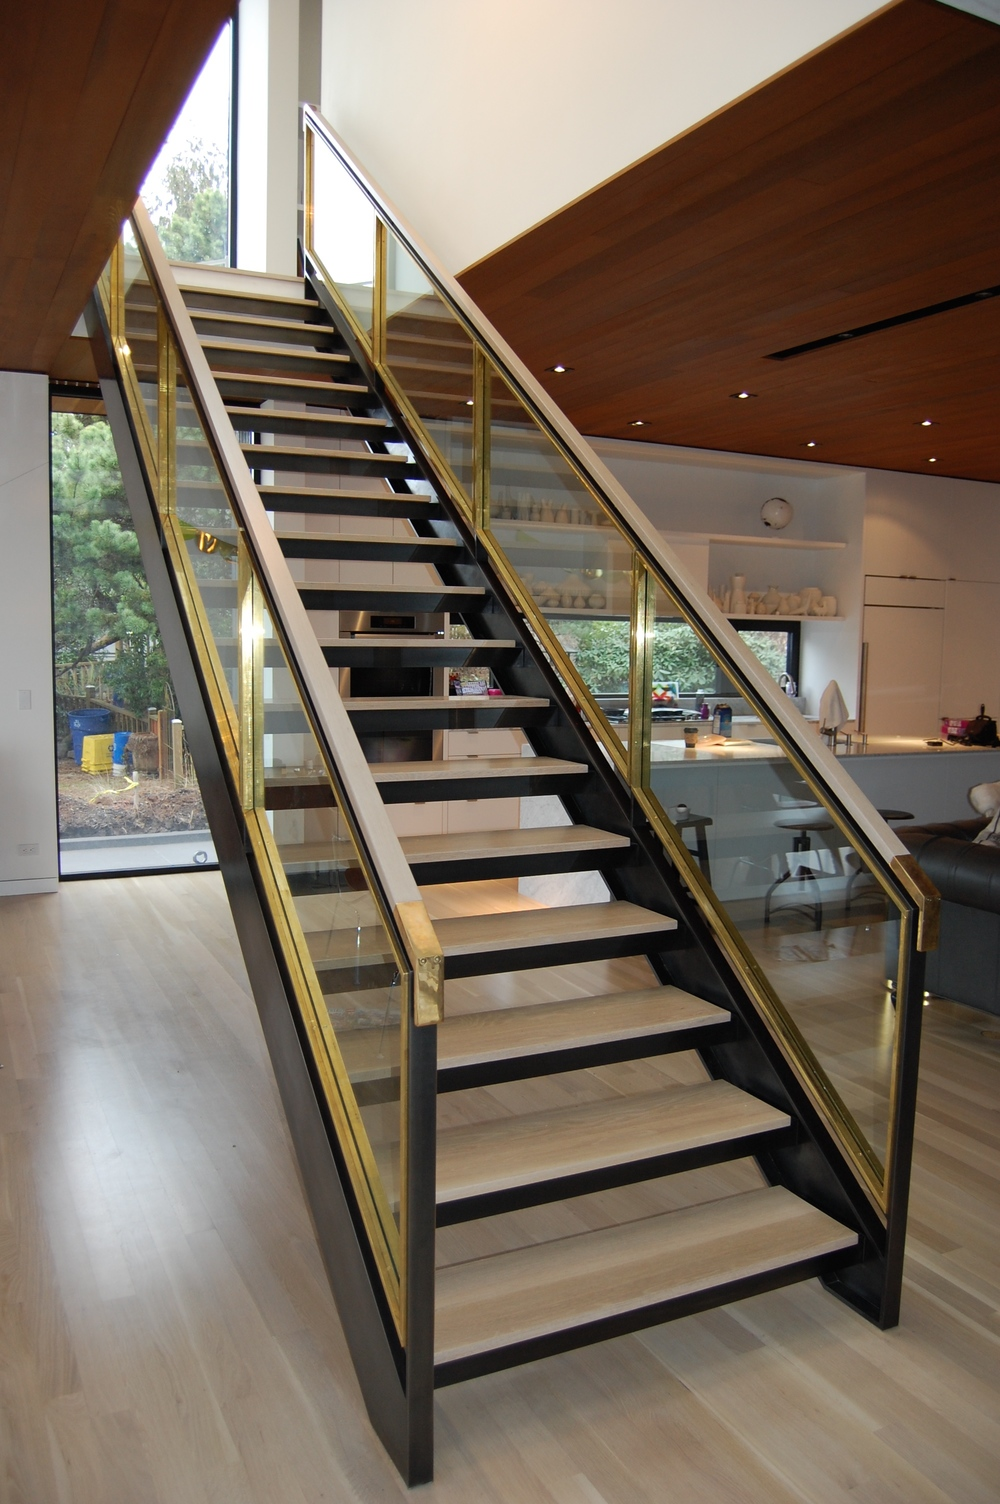 Incroyable Staircase Built Out Of Blackened Steel, Brass And Glass. Glass Is Stopped  In On